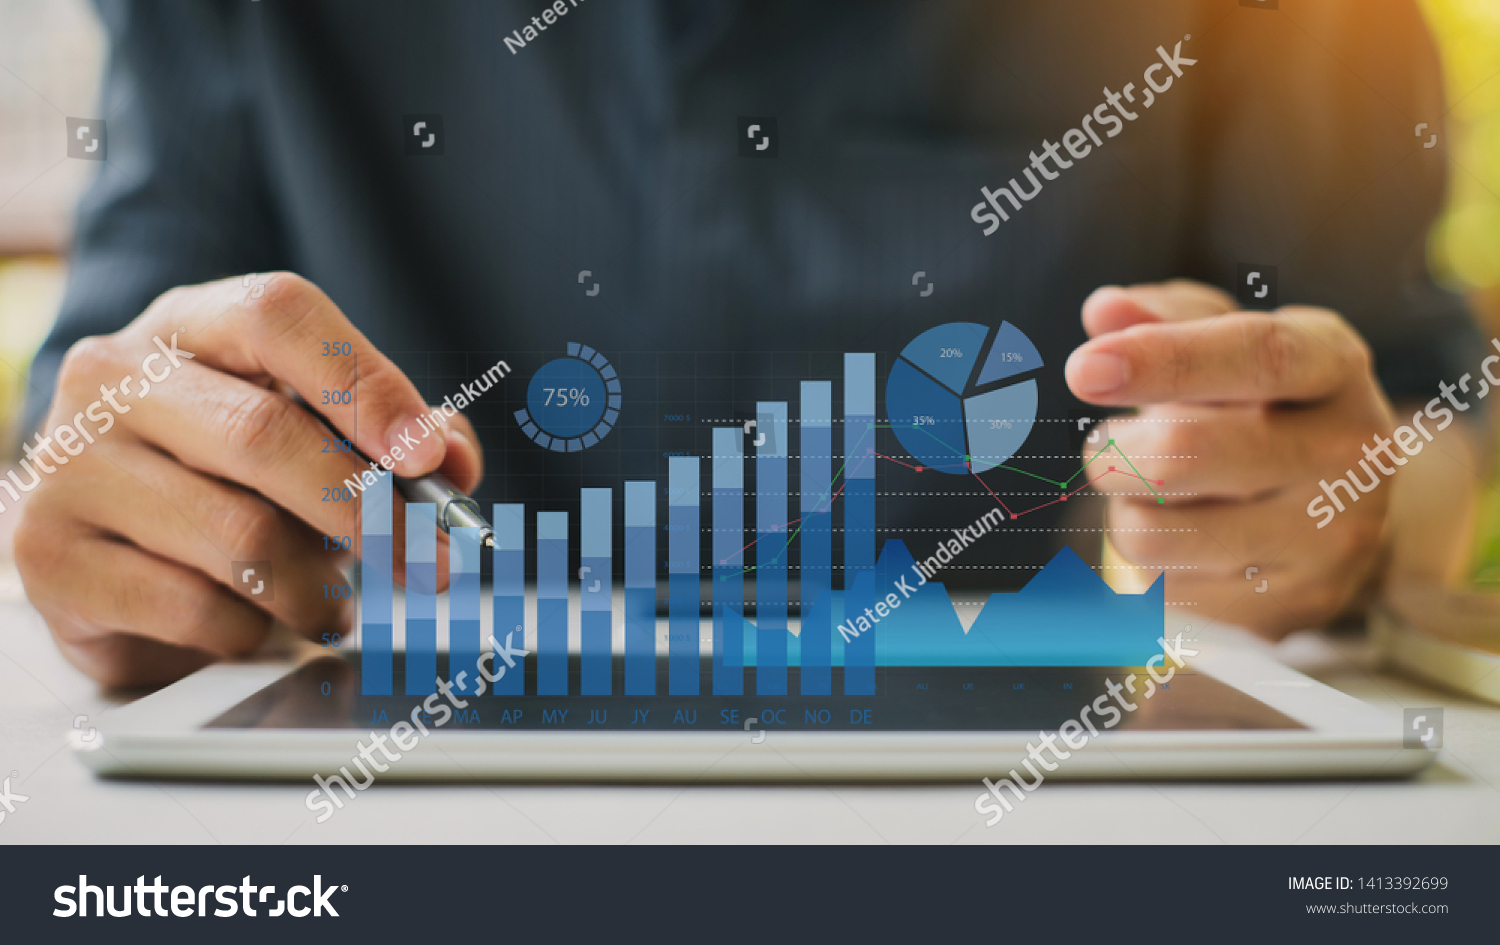 Businessman investment consultant analyzing company financial report balance statement working with digital augmented reality graphics. Concept for business, economy and marketing. 3D illustration. #1413392699